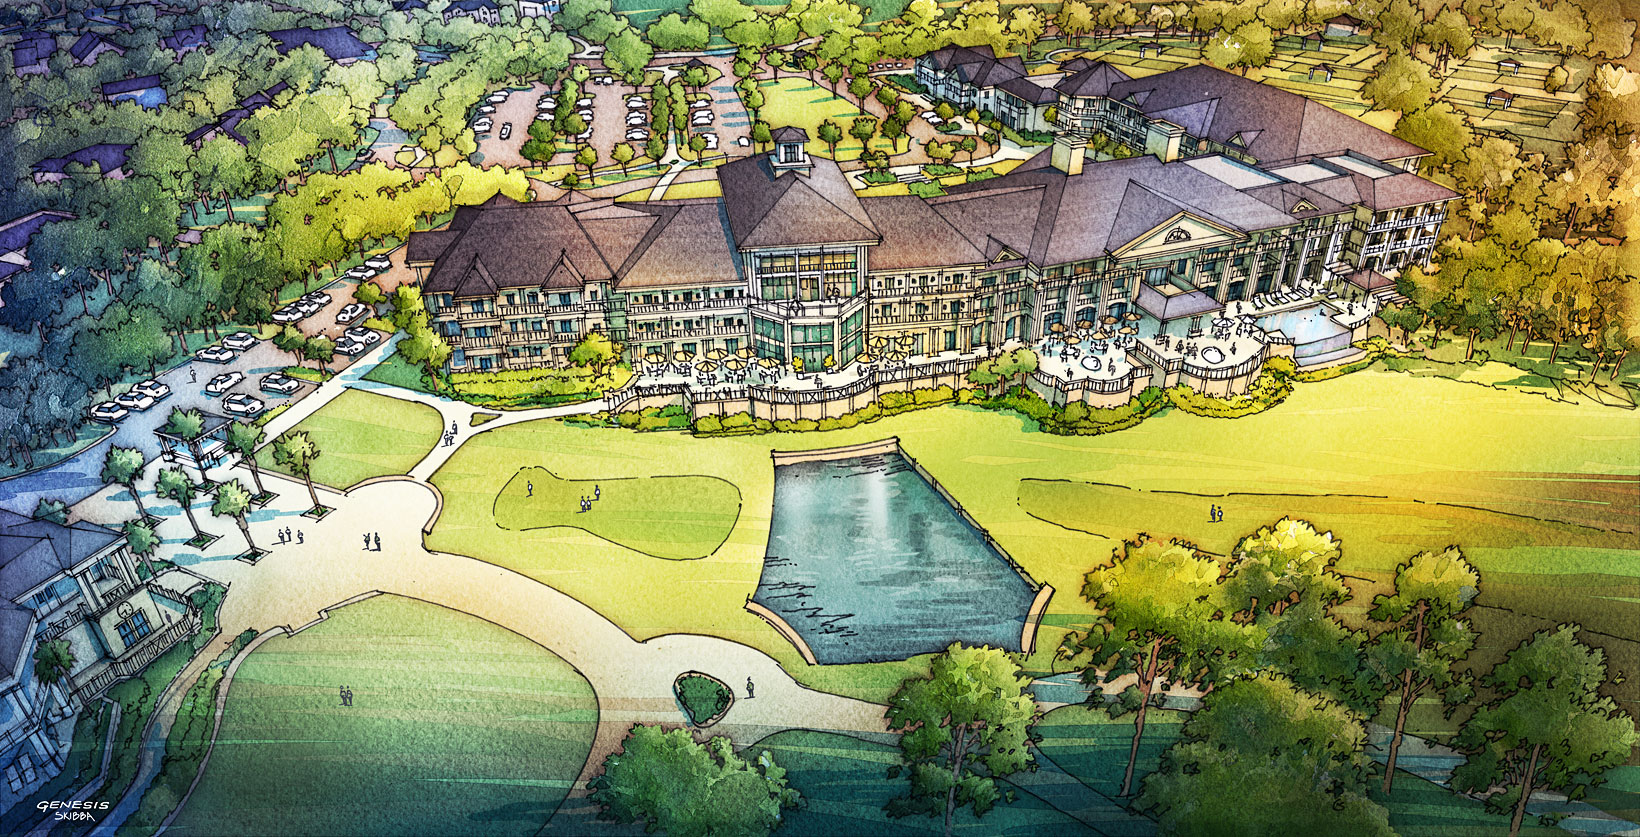 515181 Digital Watercolor Architectural Rendering of Sea Pines from an Aerial View for Cooper Carry